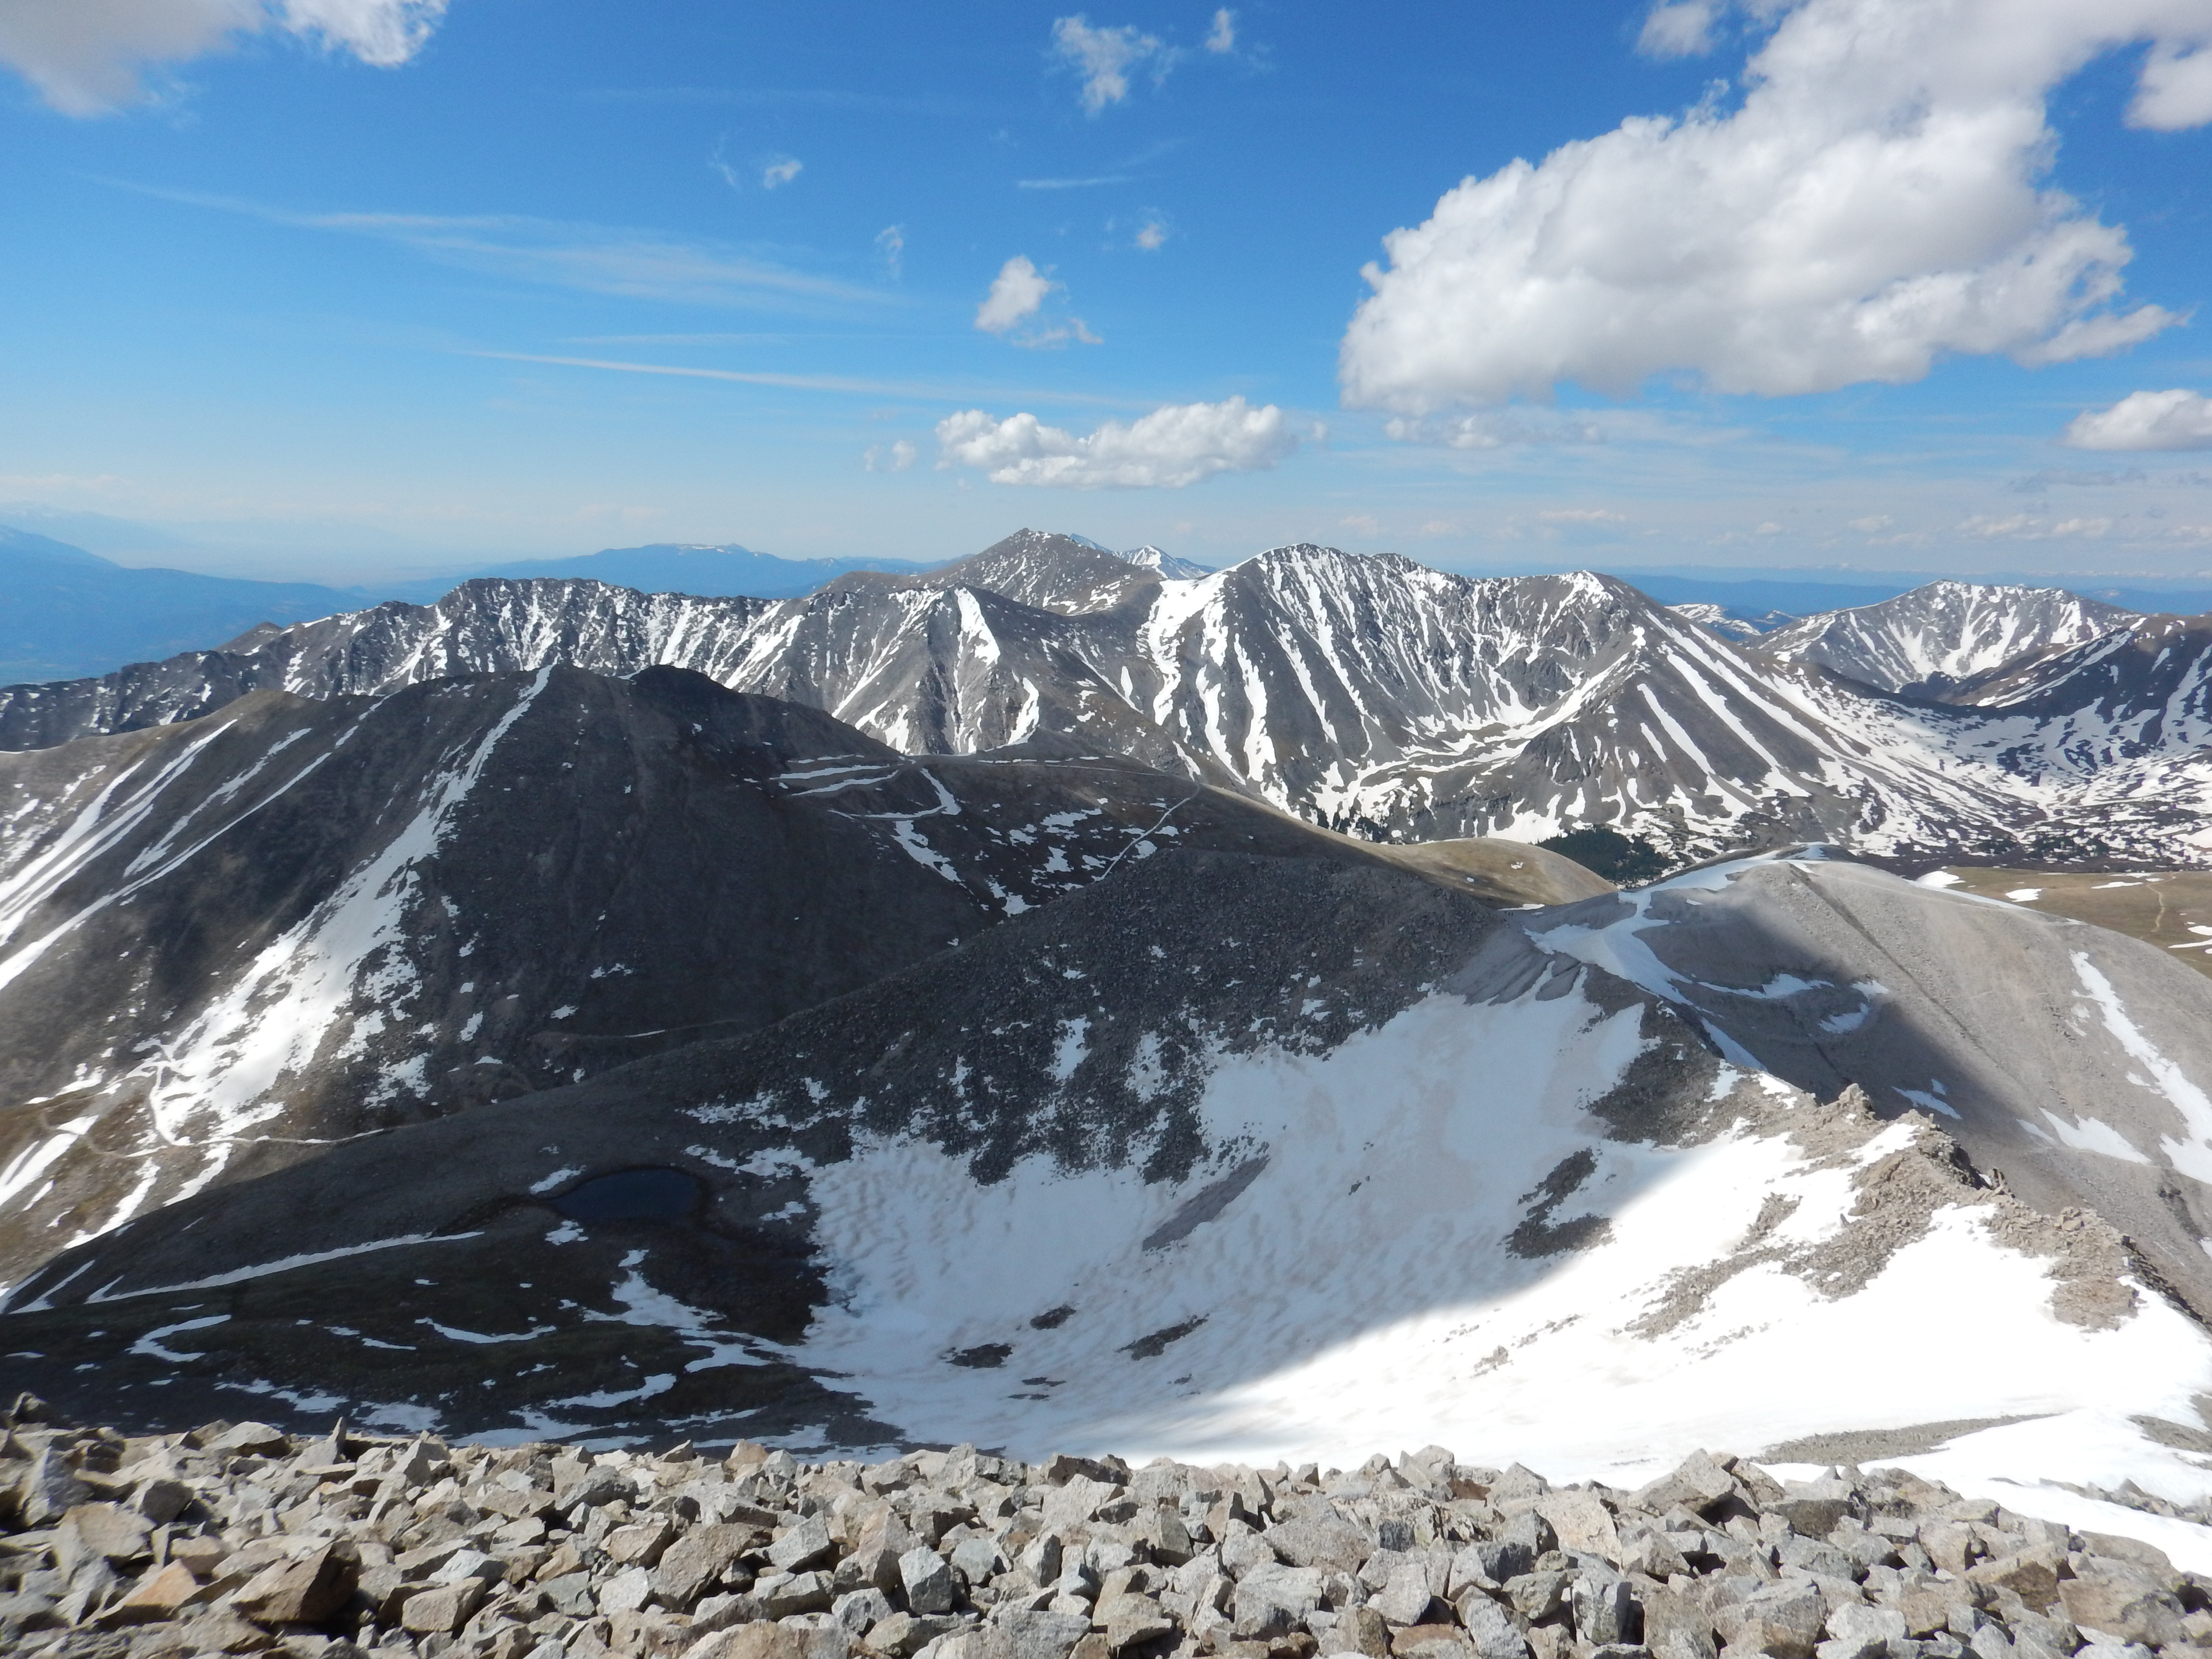 View of Mt. Shavano and Tabeguache from Mt. Antero.